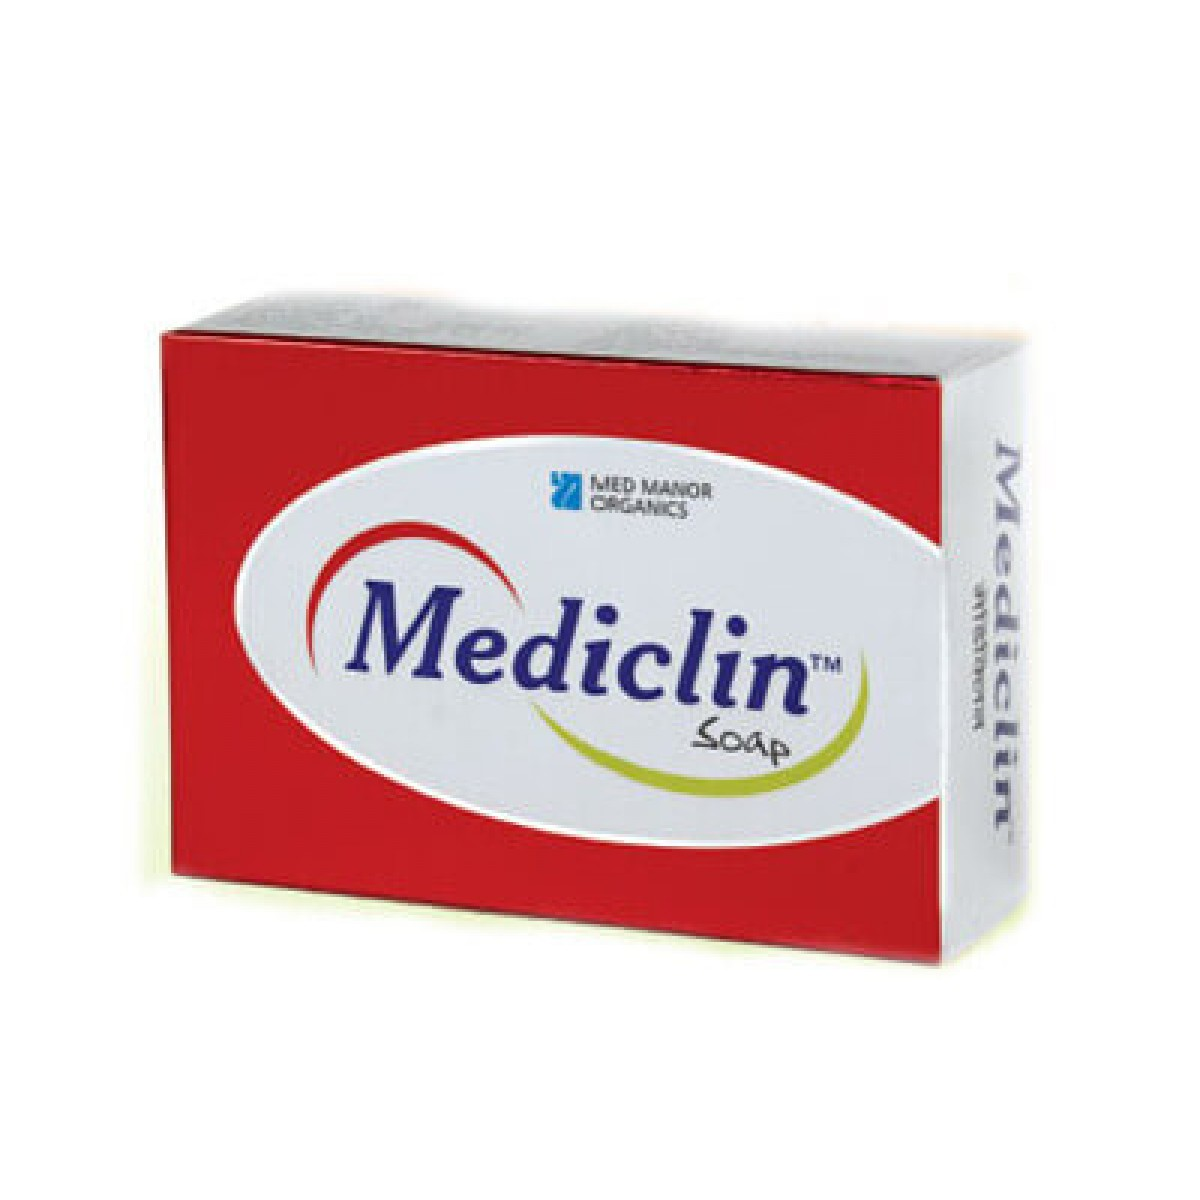 Mediclin Soap 75g pack of 3